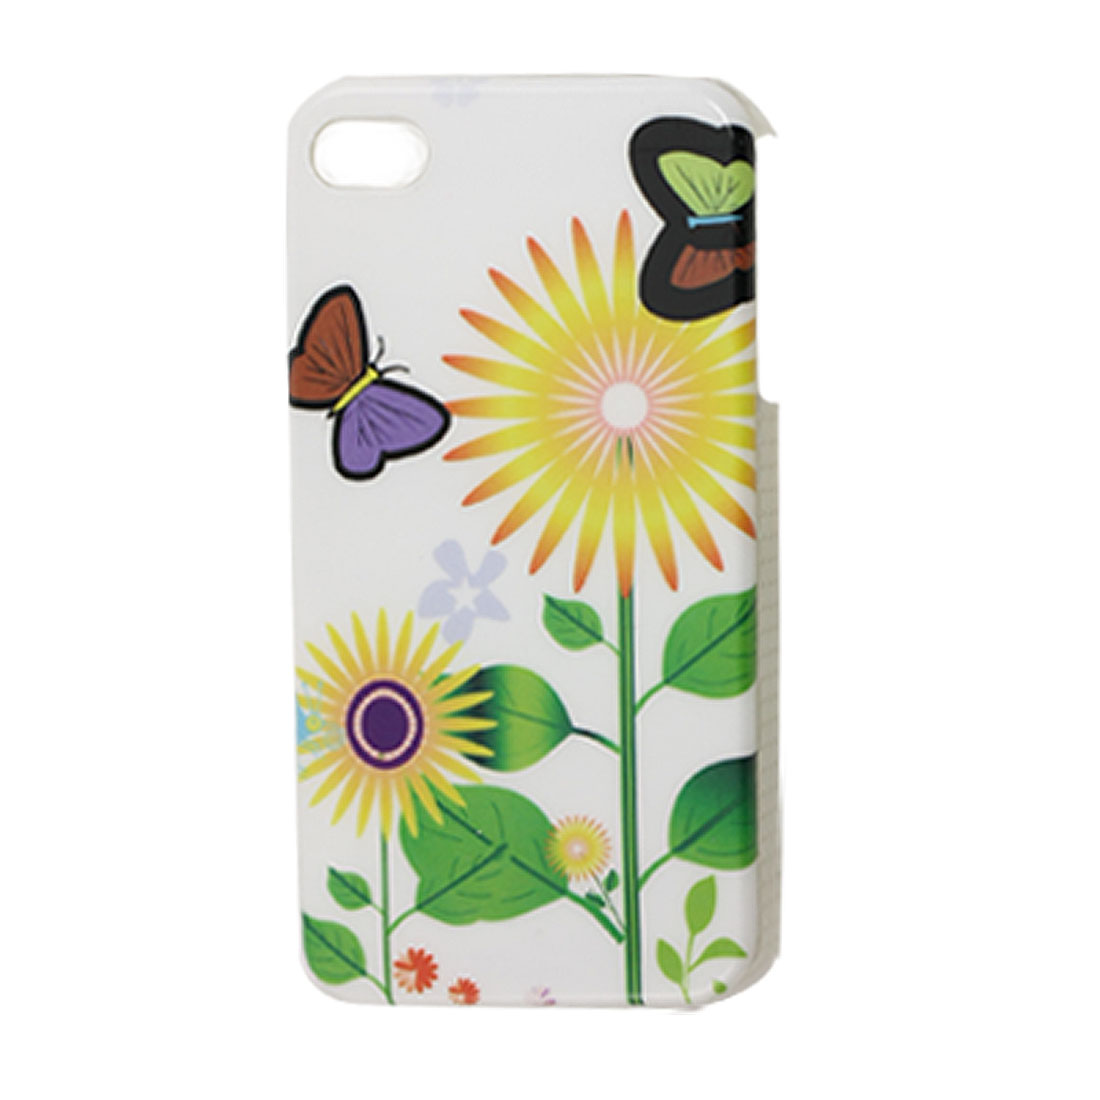 IMD Sunflower Pattern Nonslip Side Back Cover Guard for iPhone 4 4G 4S